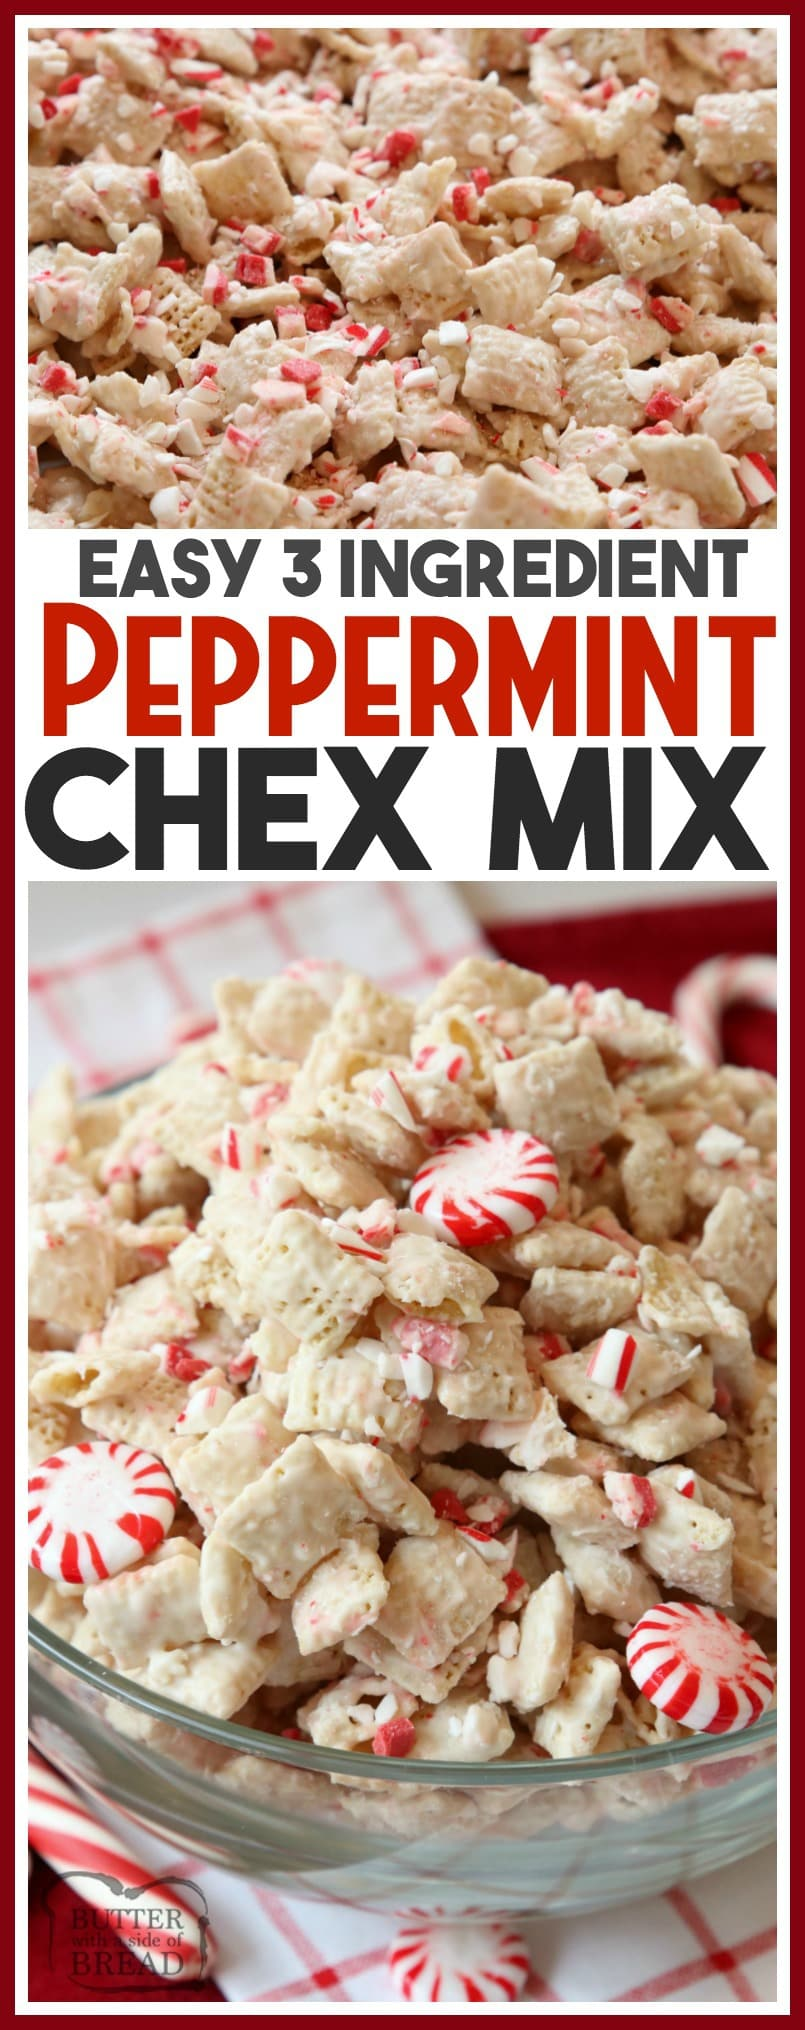 Peppermint Chex Mix made with only 3 ingredients in a few minutes! Simple recipe for festive, sweet peppermint treat that's perfect for holiday parties. Simple #peppermint #Christmas #recipe for #Holiday #Chex Mix from Butter With A Side of Bread